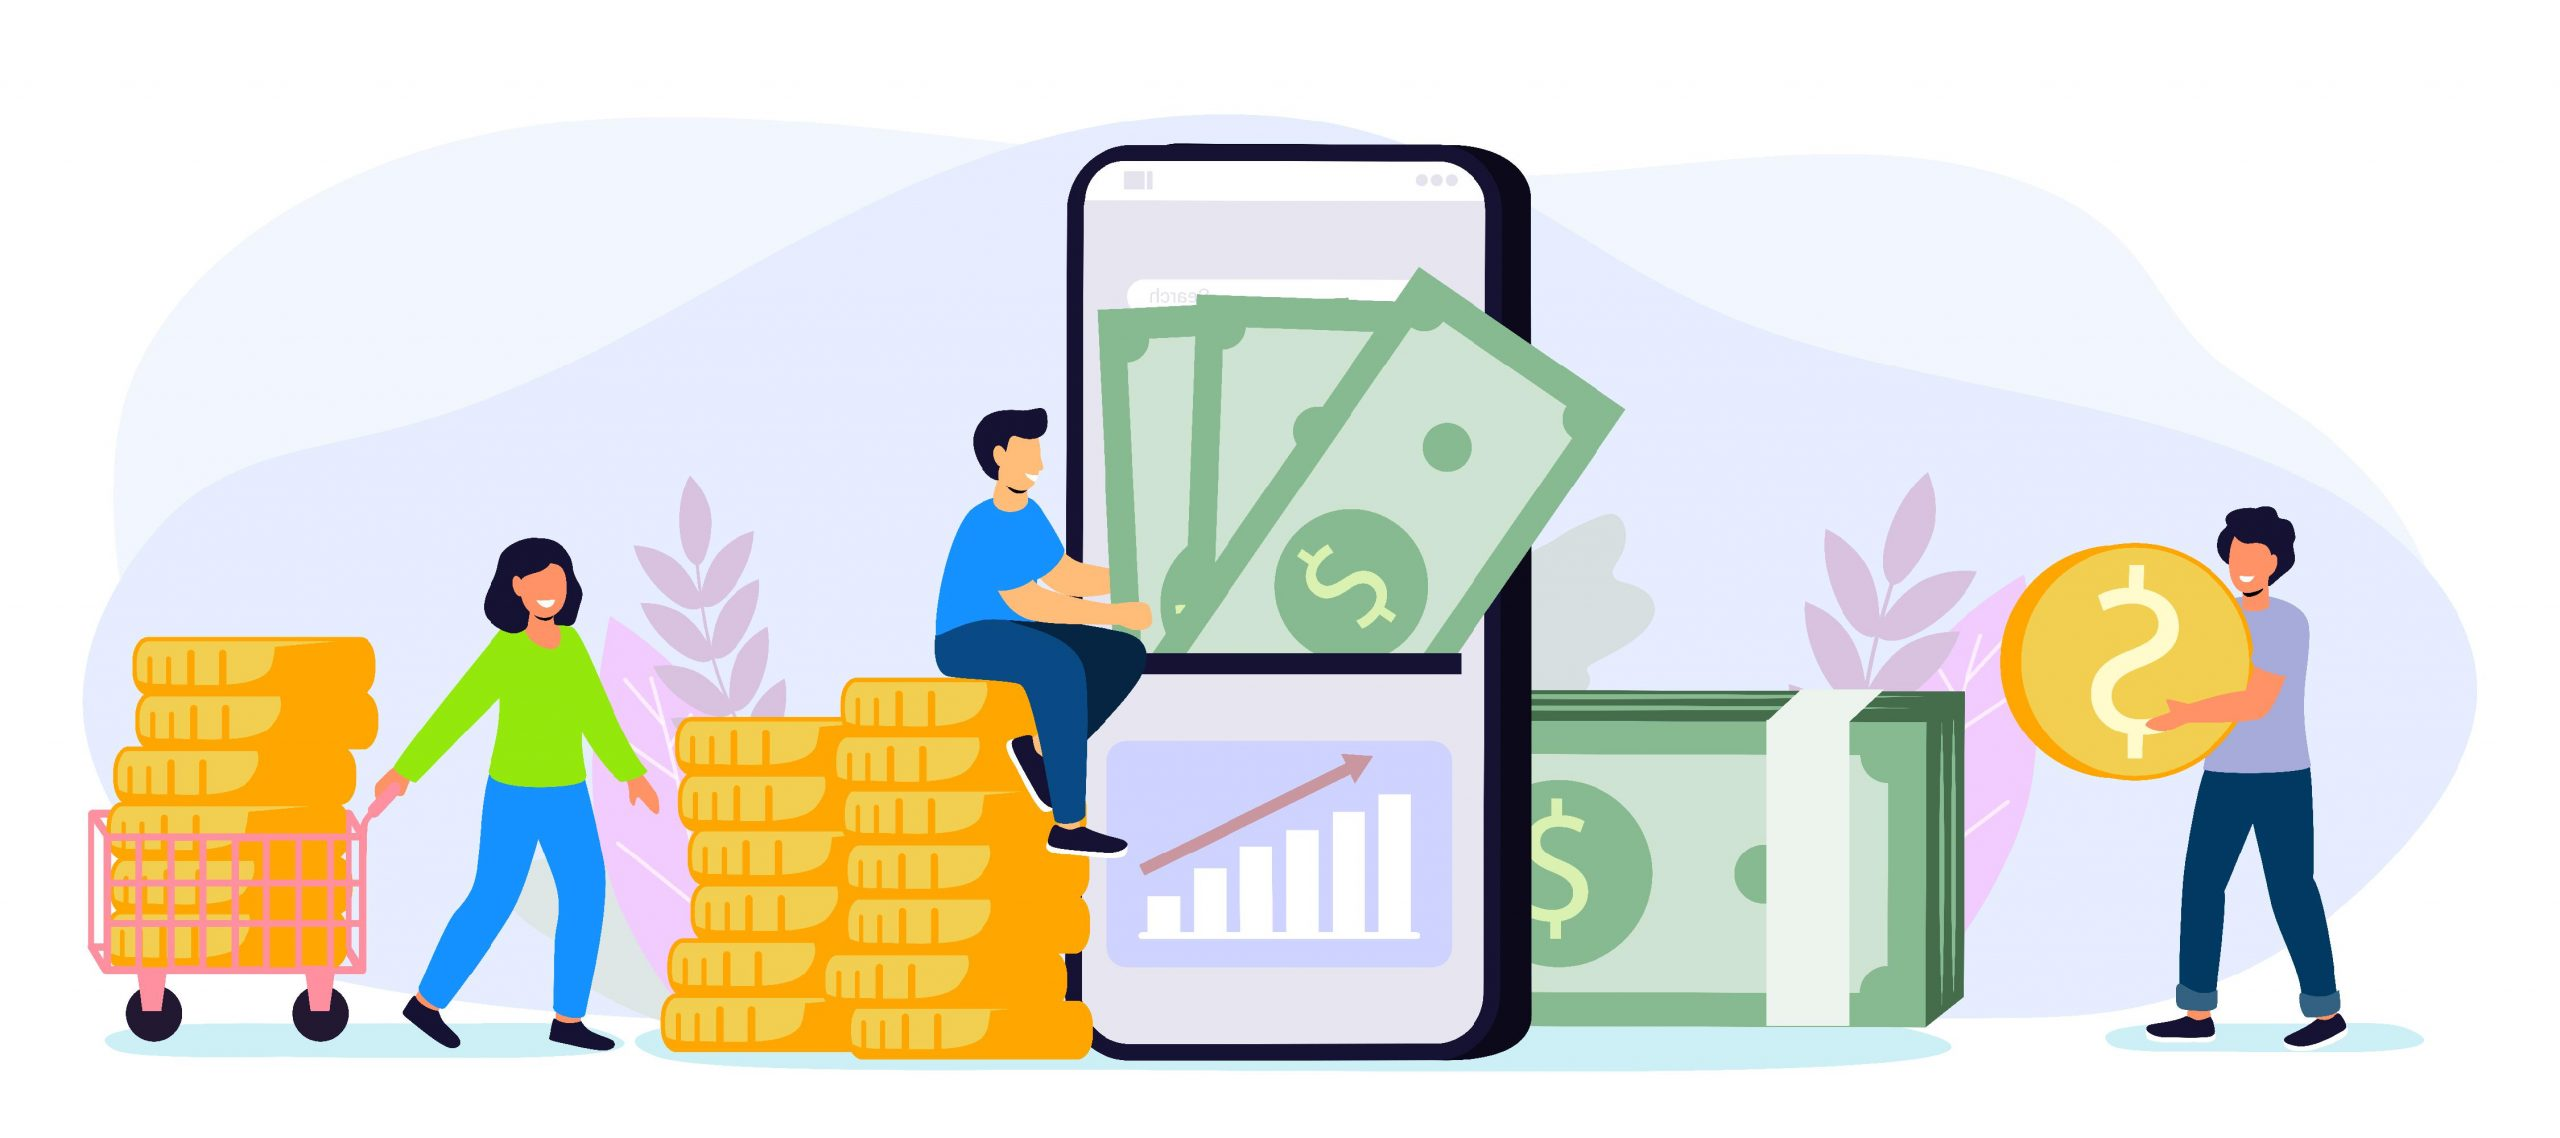 How to Budget Easily With Apps